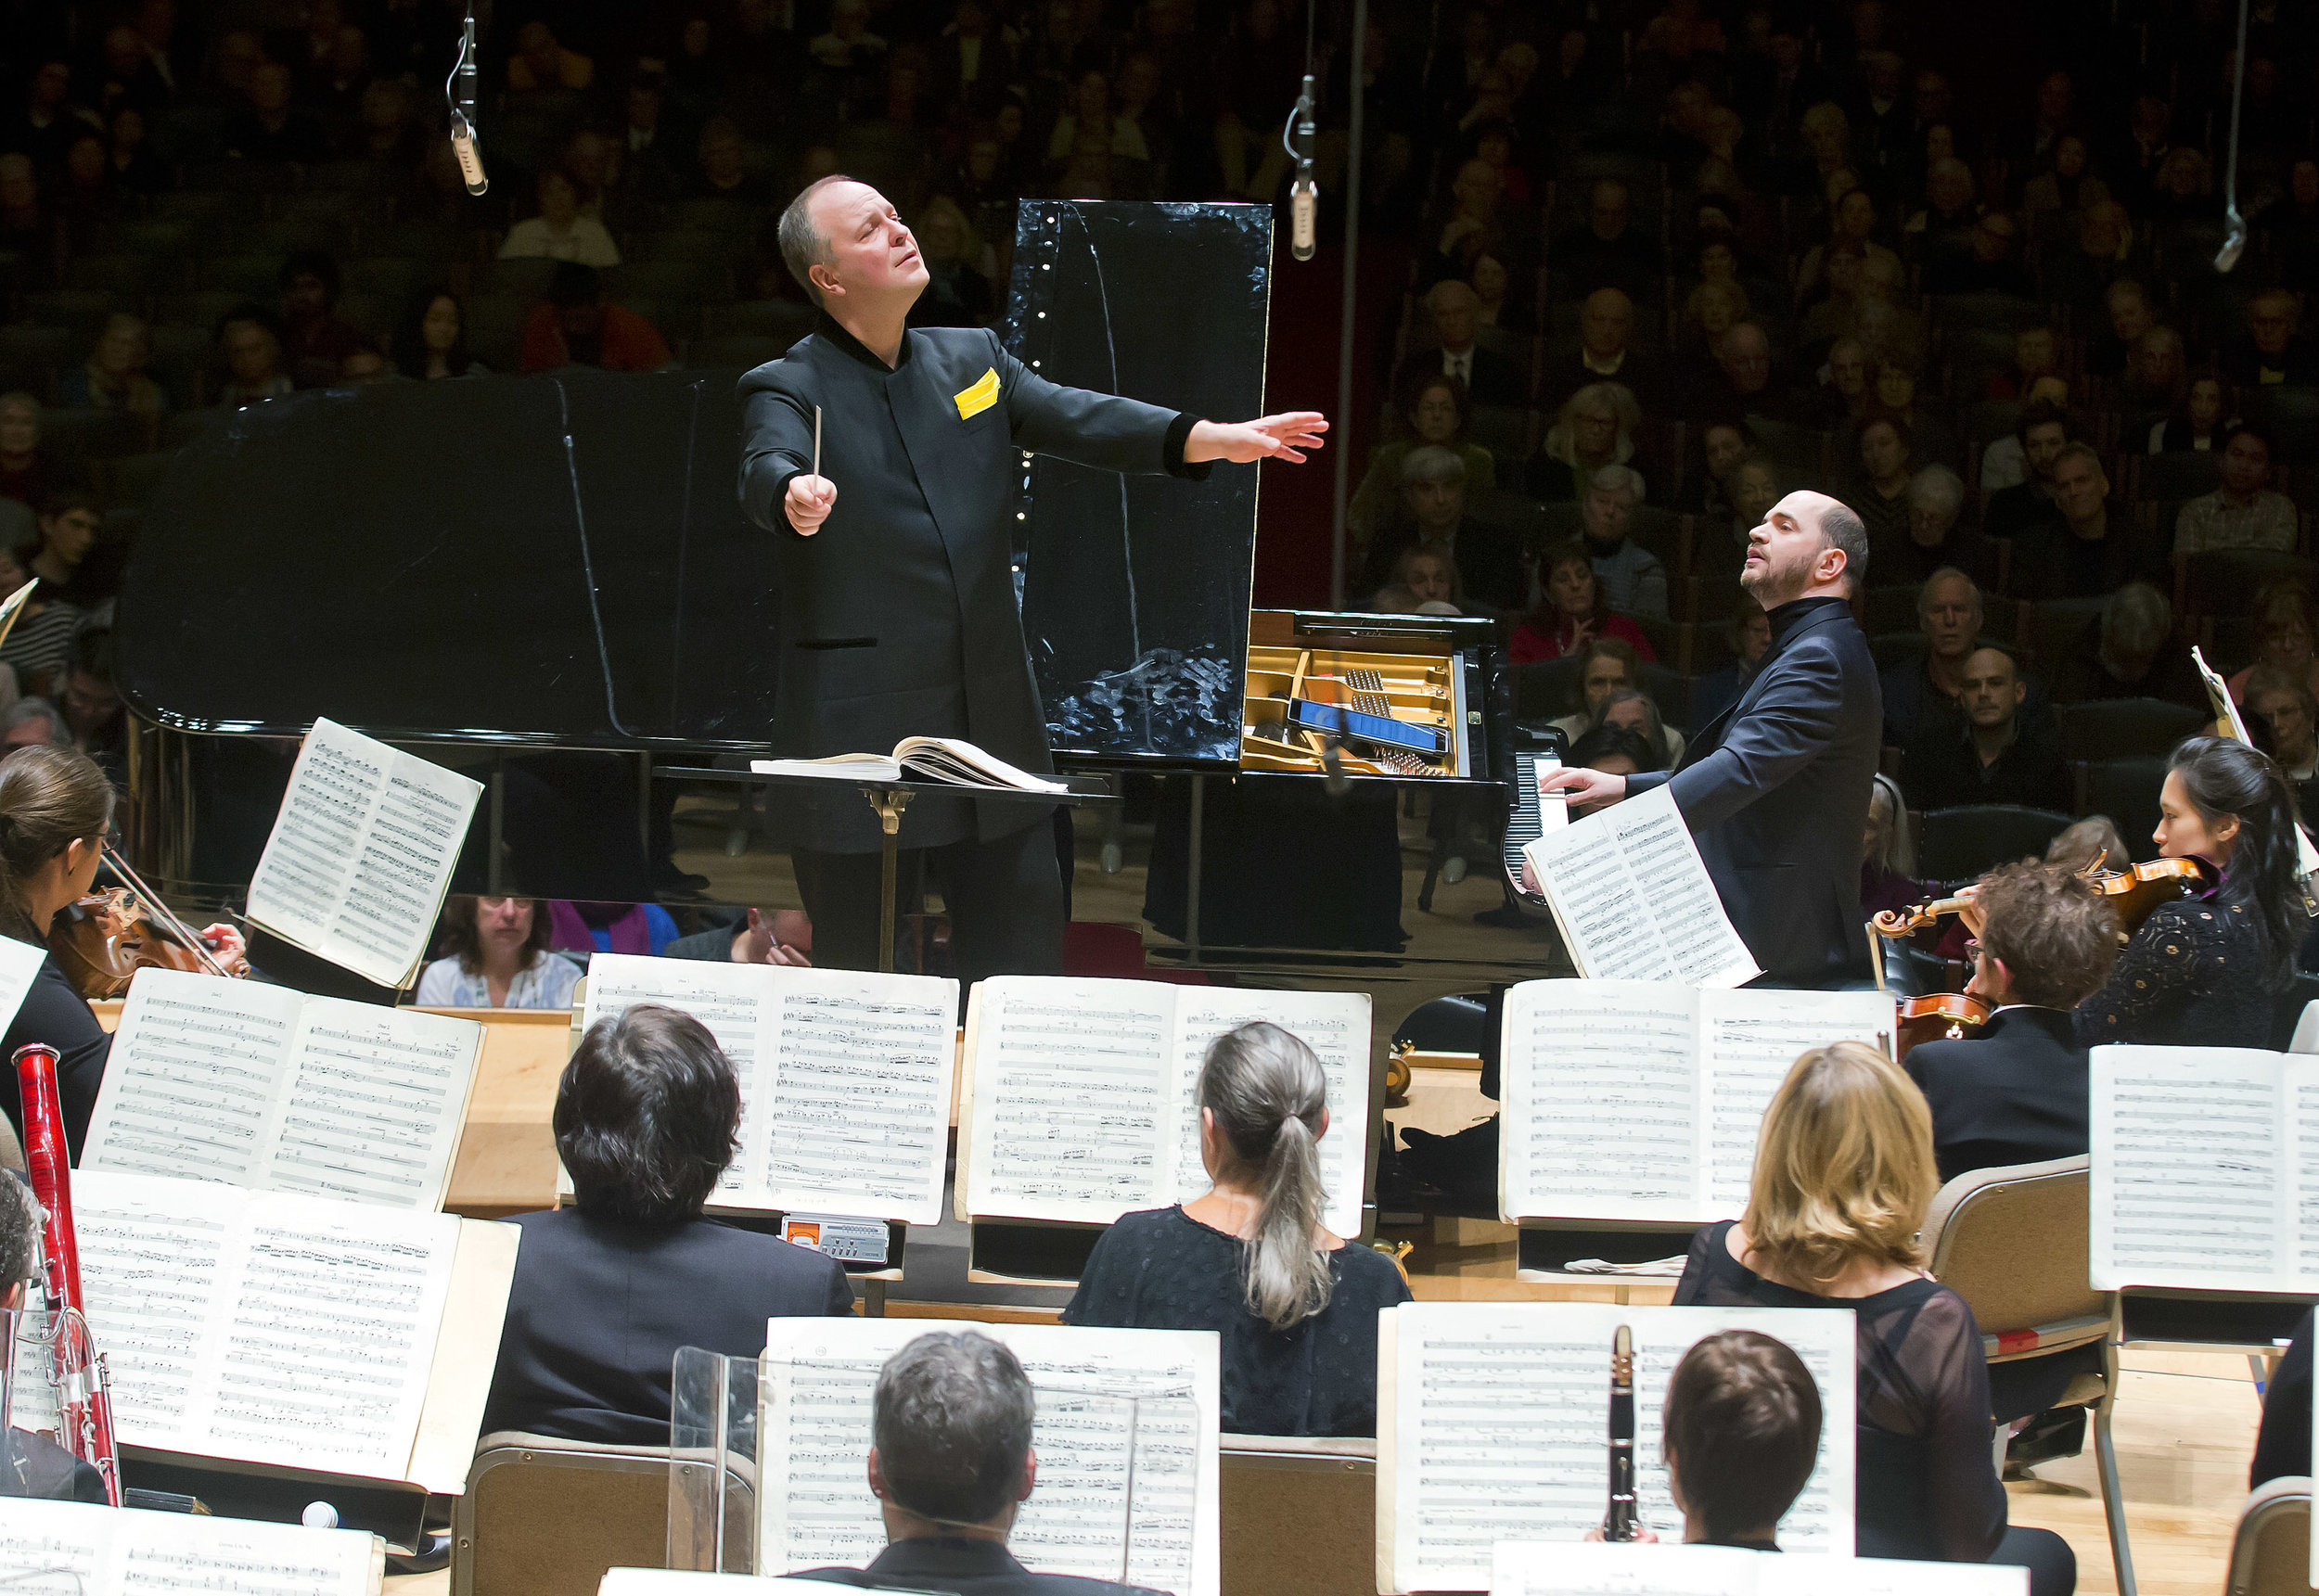 The Boston Symphony Orchestra, Sakari Oramo conducting, with soloist Kirill Gerstein, Friday afternoon at Symphony Hall. Winslow Townson photograph.